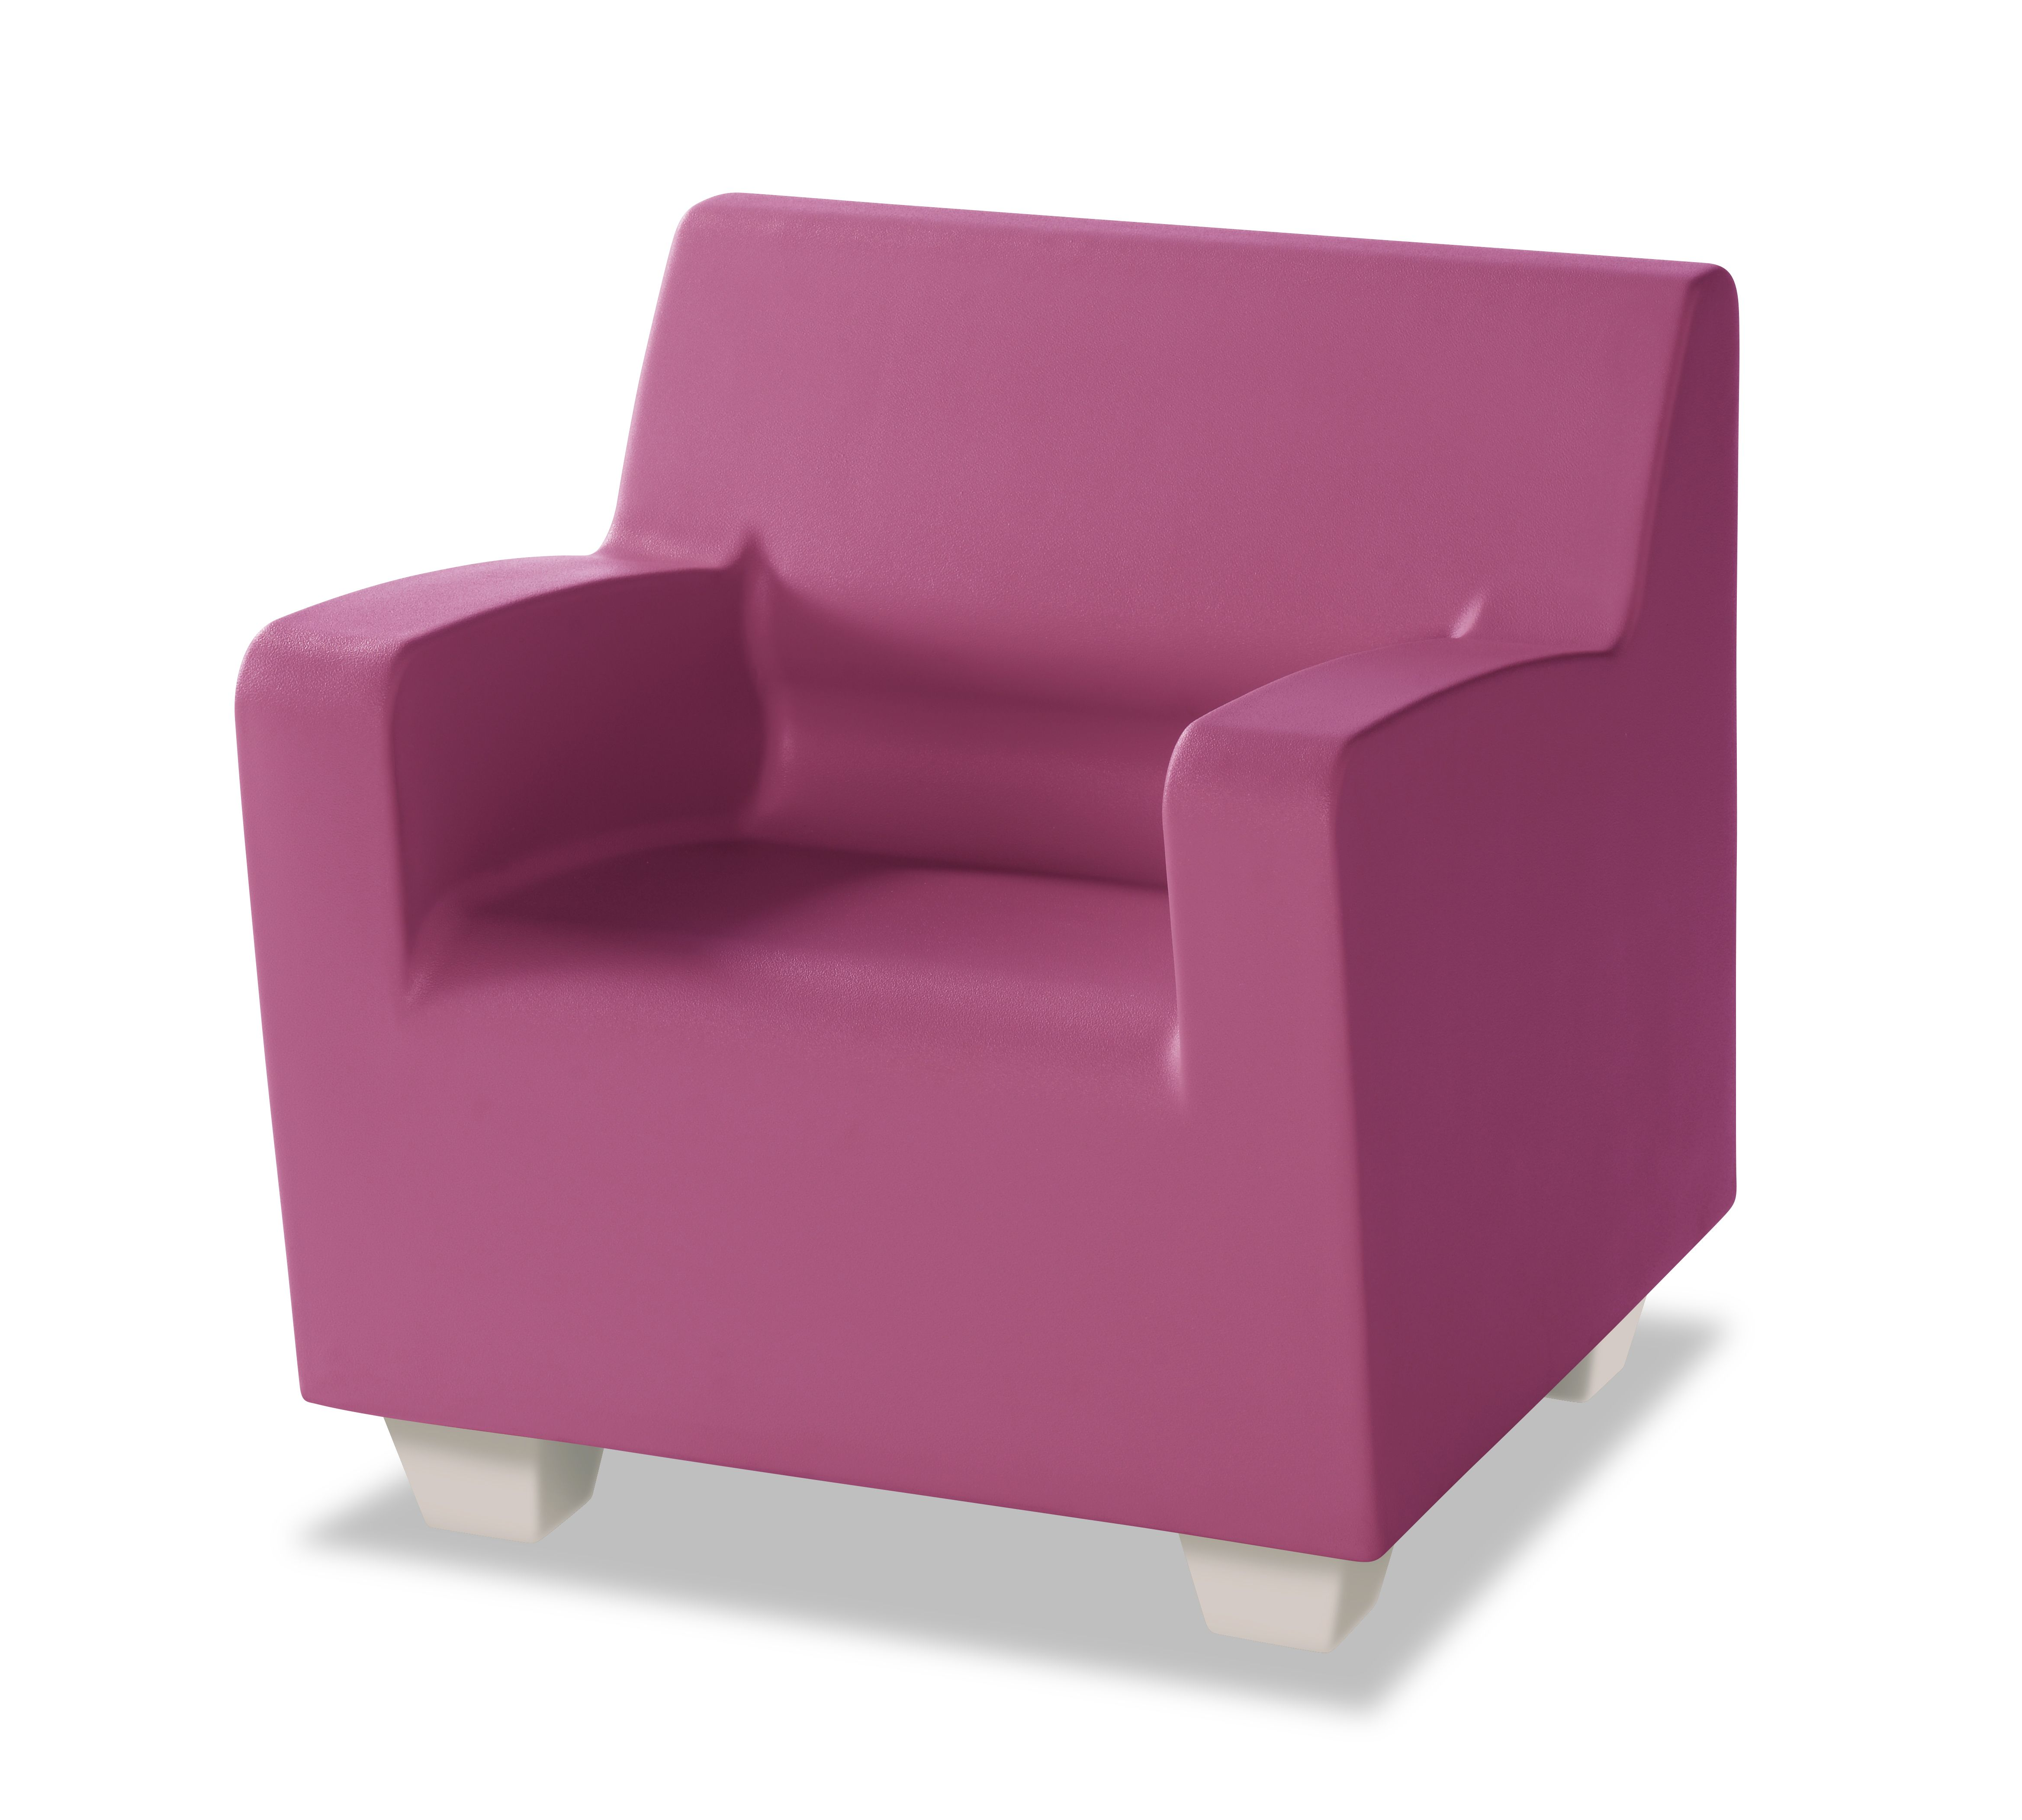 Awesome Norix Furnitureu0027s Hondo Nuevo Arm Chair In Our High Brights Color Palette.  High Durable.